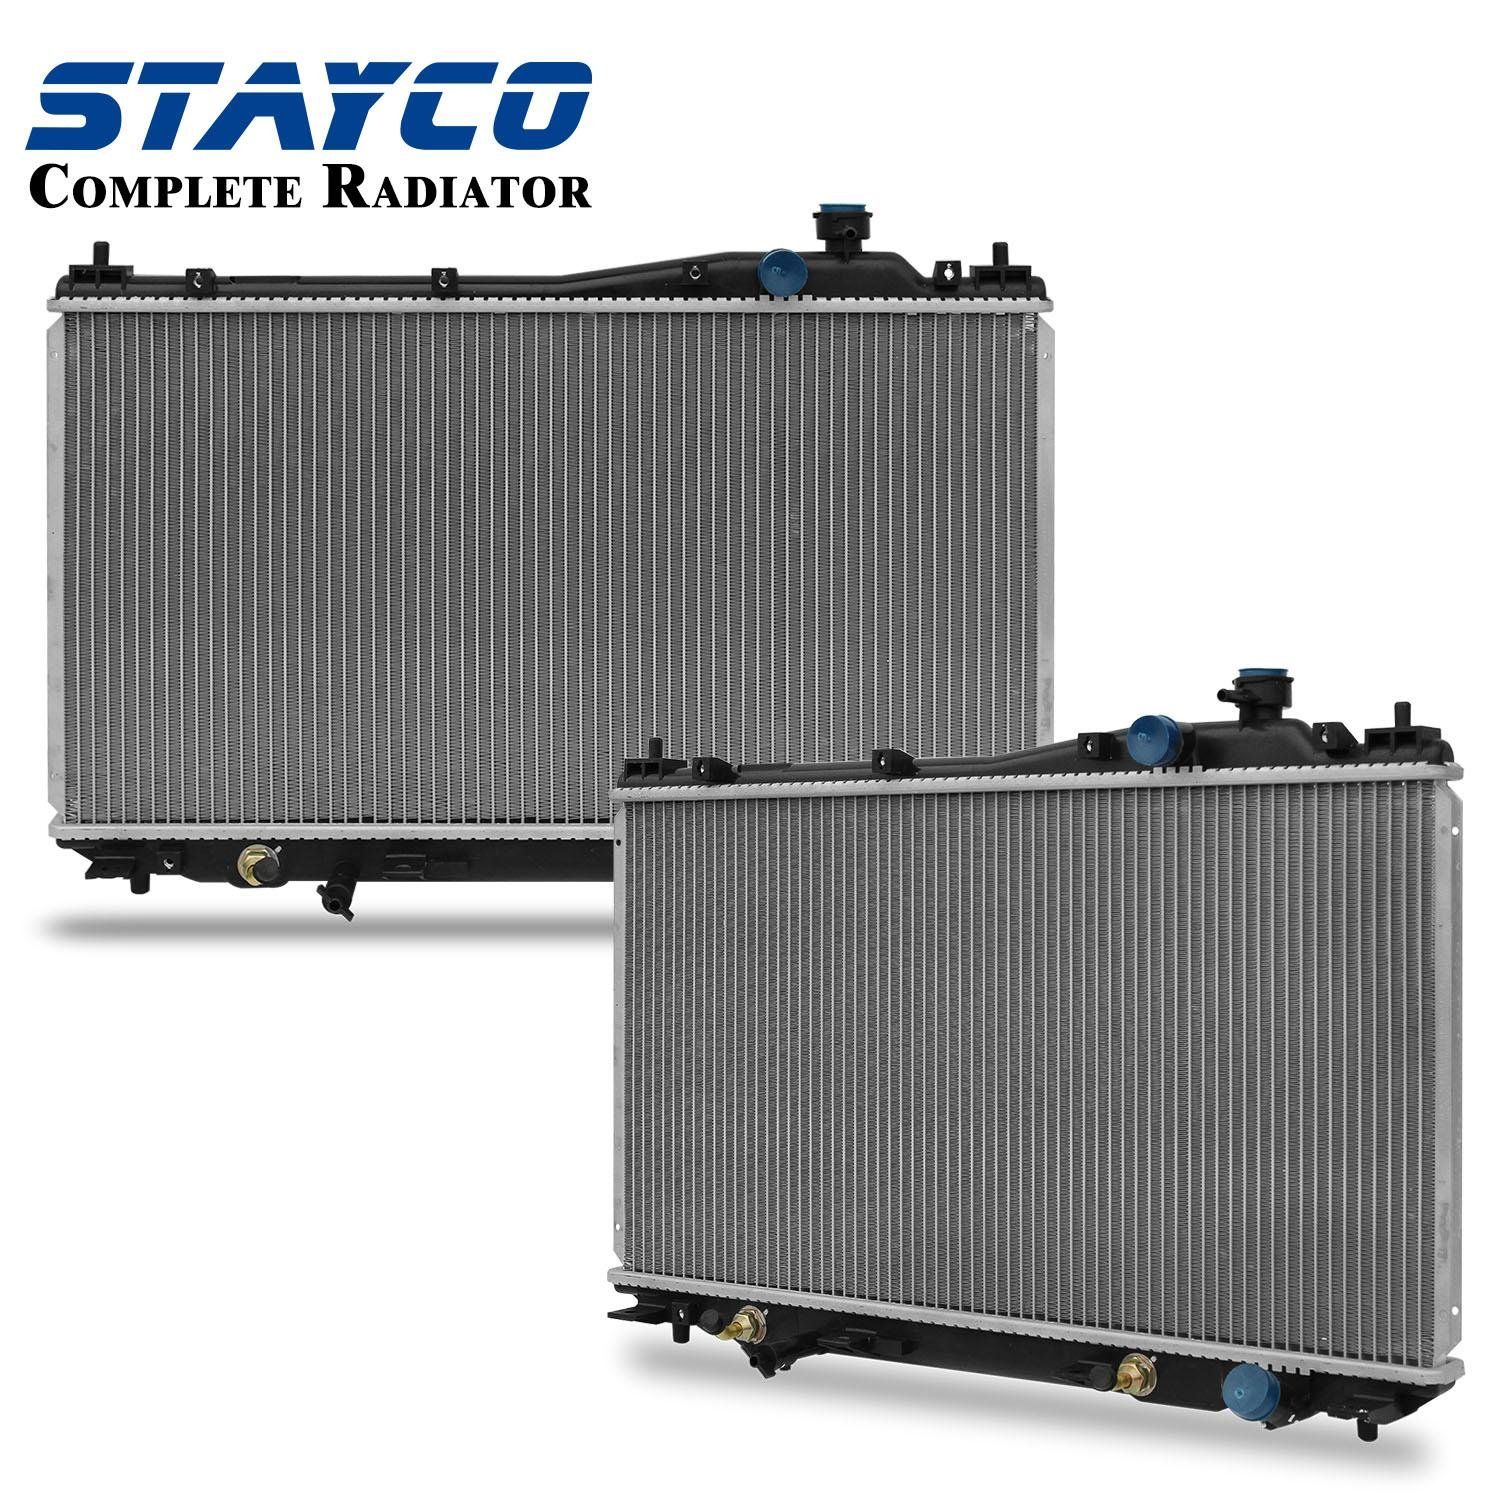 STAYCO 2354 Radiator For 2001-2005 Honda Civic 1.7L L4 with Transmission Oil Cooler Fittings